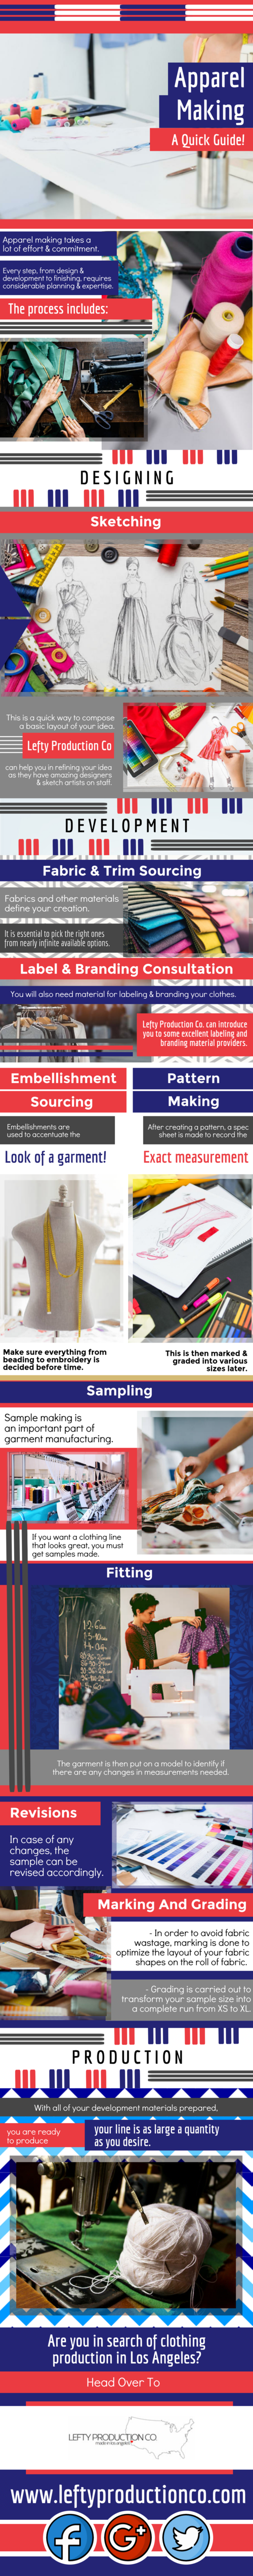 Apparel+Making+-+A+Quick+Guide.png